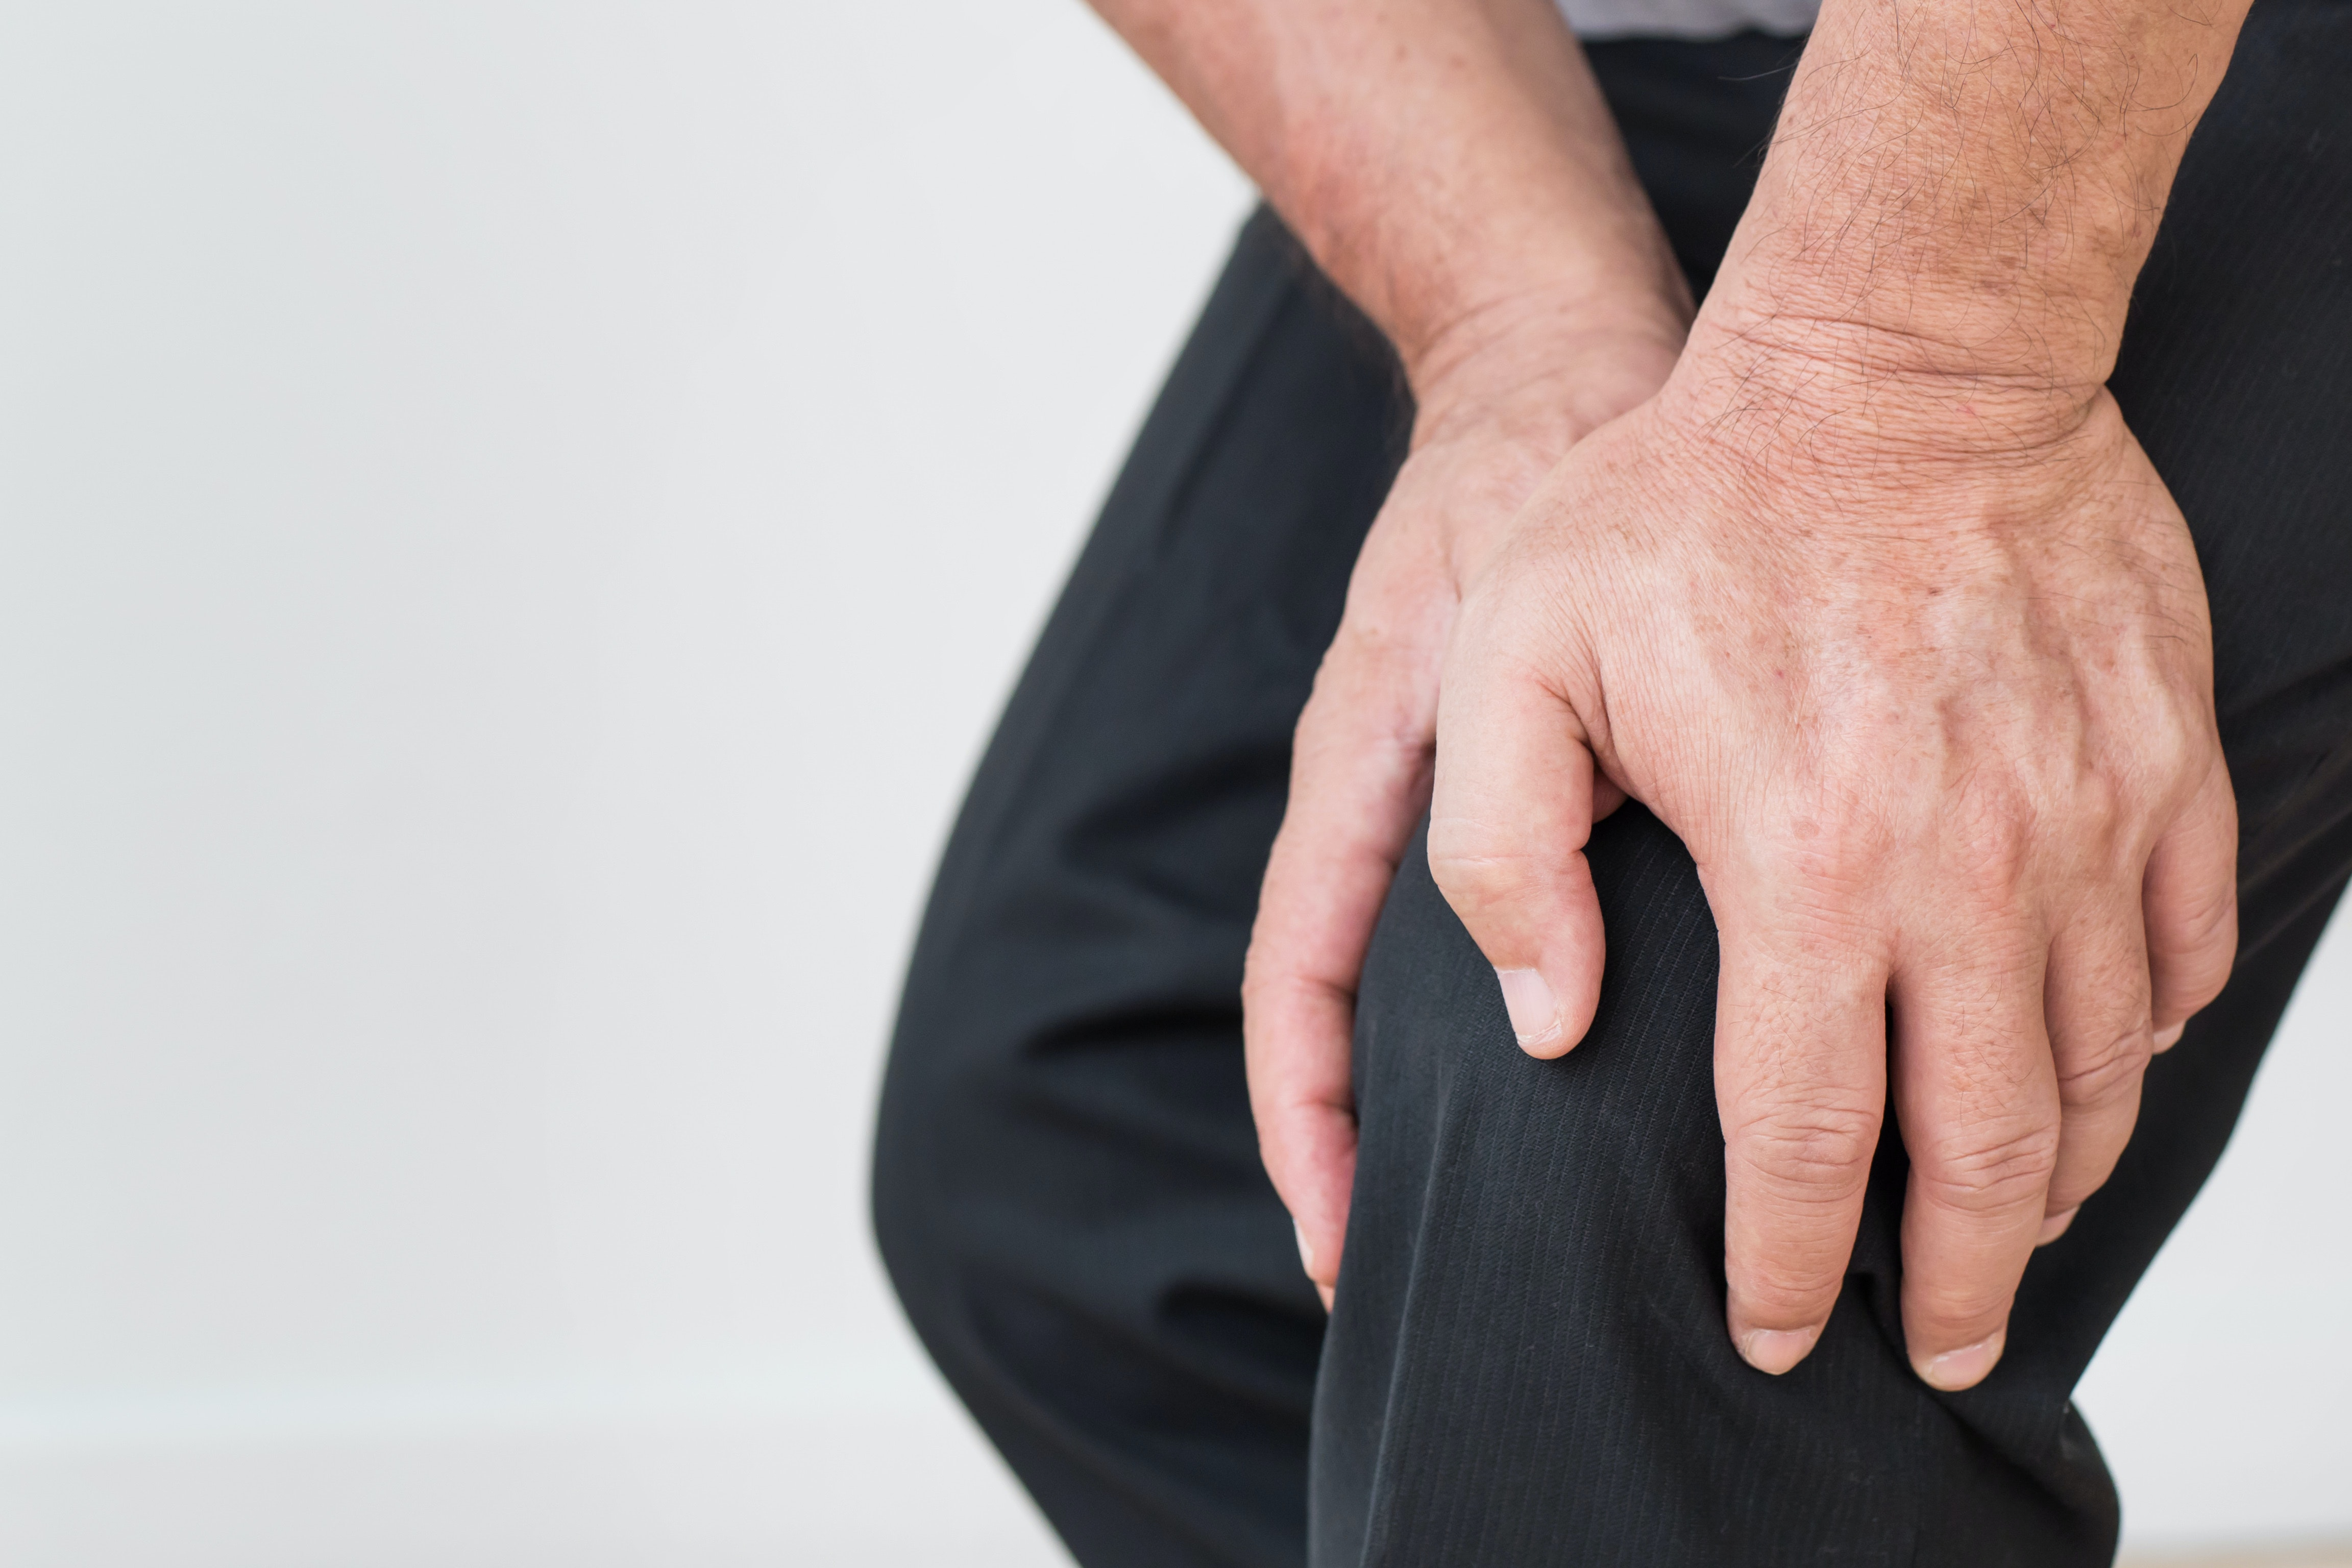 An image depicting a person suffering from spontaneous bone pain symptoms